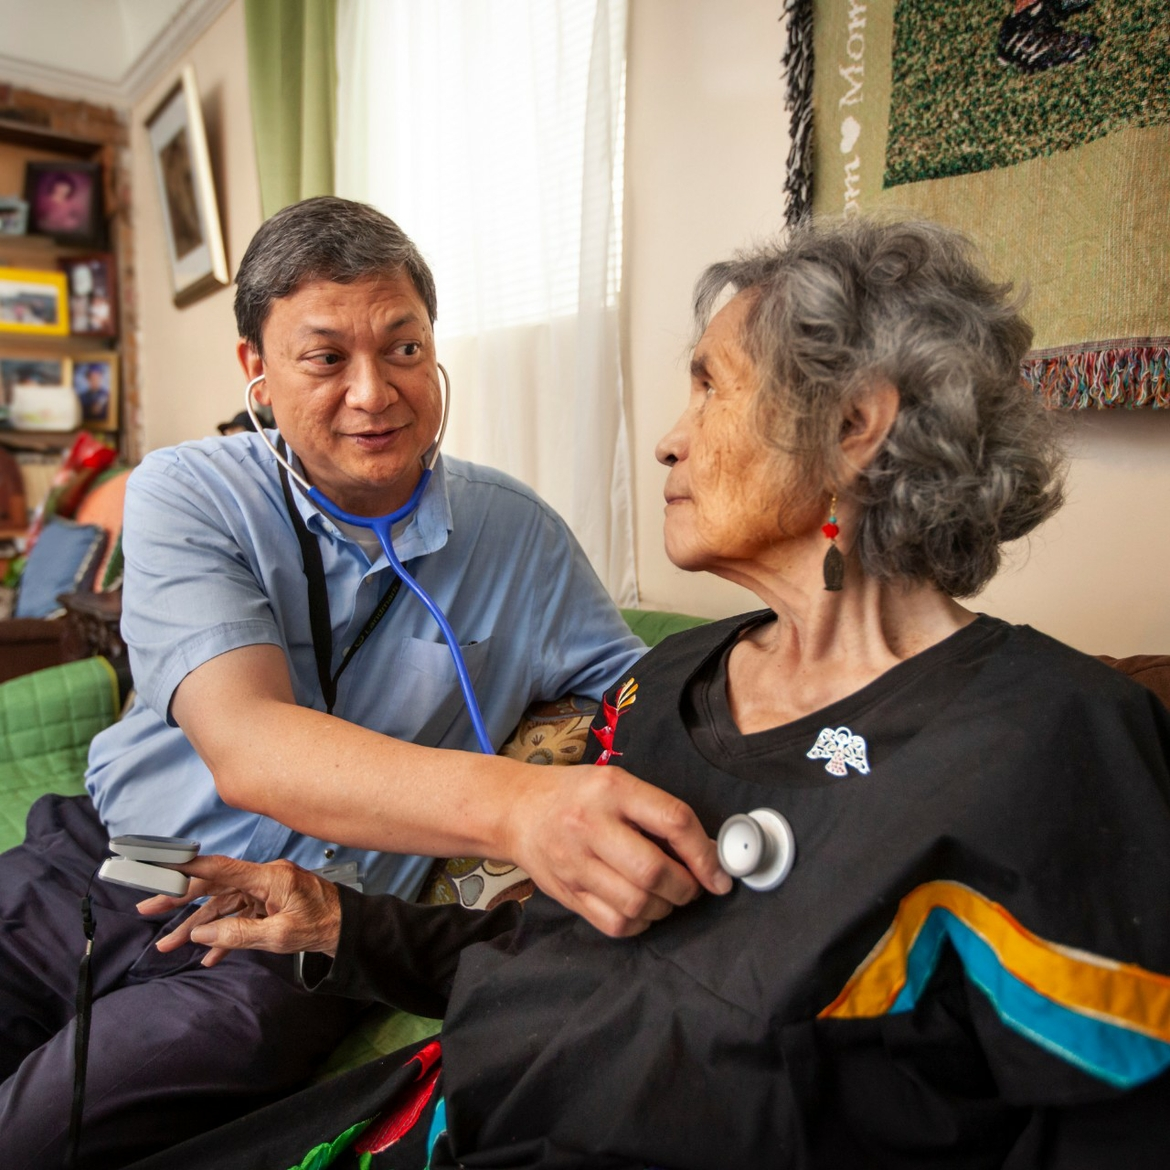 High-Touch, Data-Driven Care Initiative Spurs Rapid Growth for  Blue Shield of California's Landmark House-Calls Program in First Year